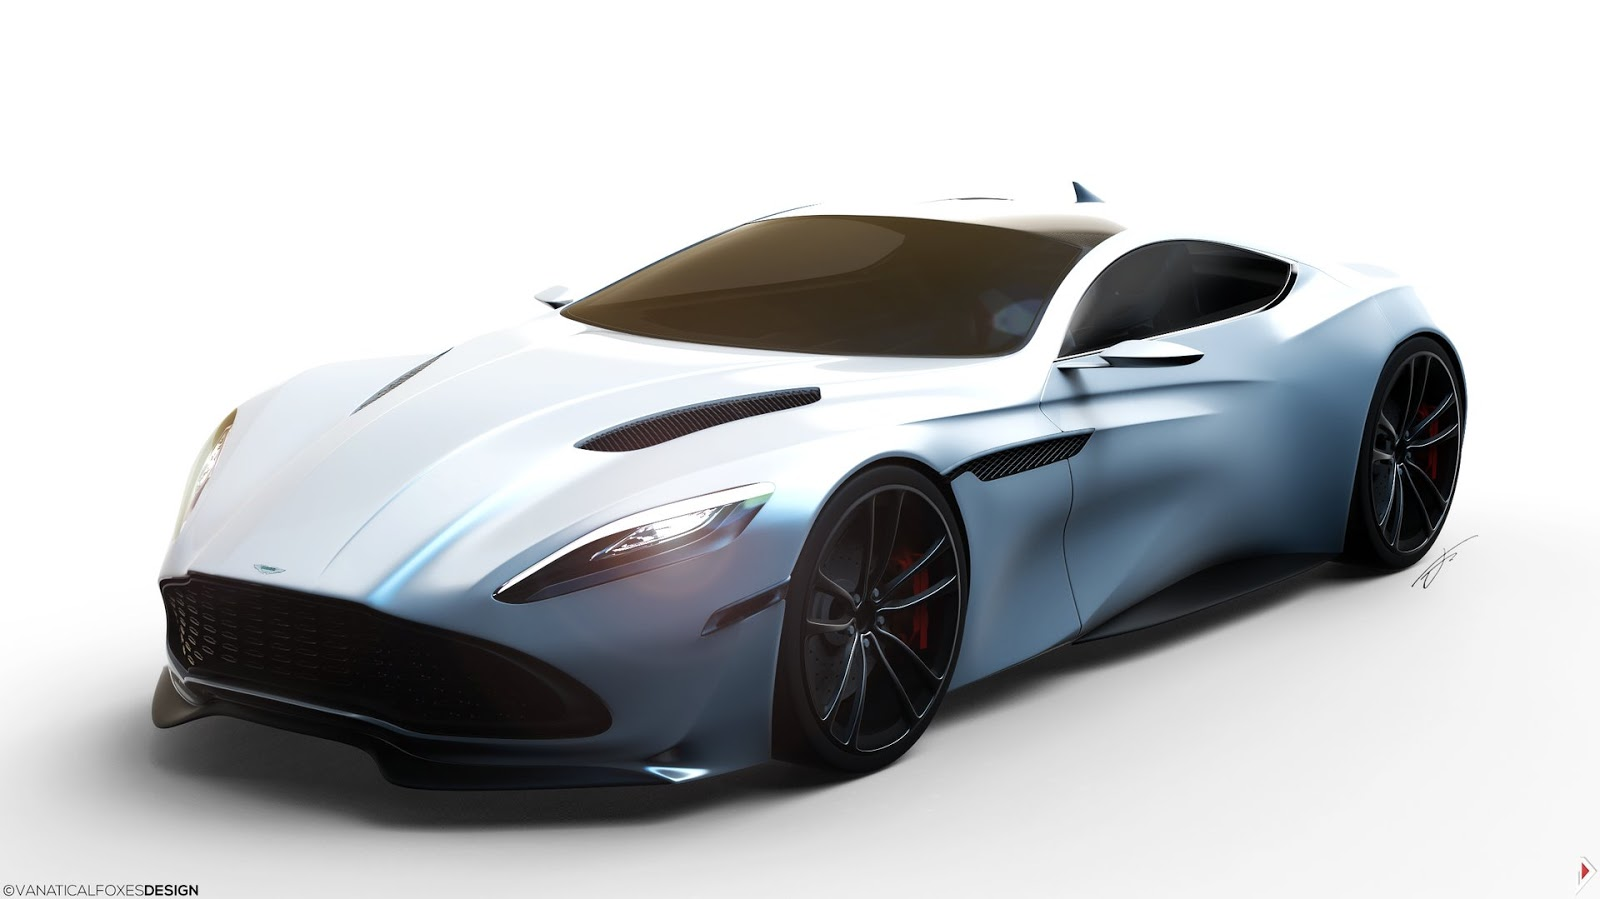 aston martin db11 imagined in jaw-dropping renderings - autoevolution